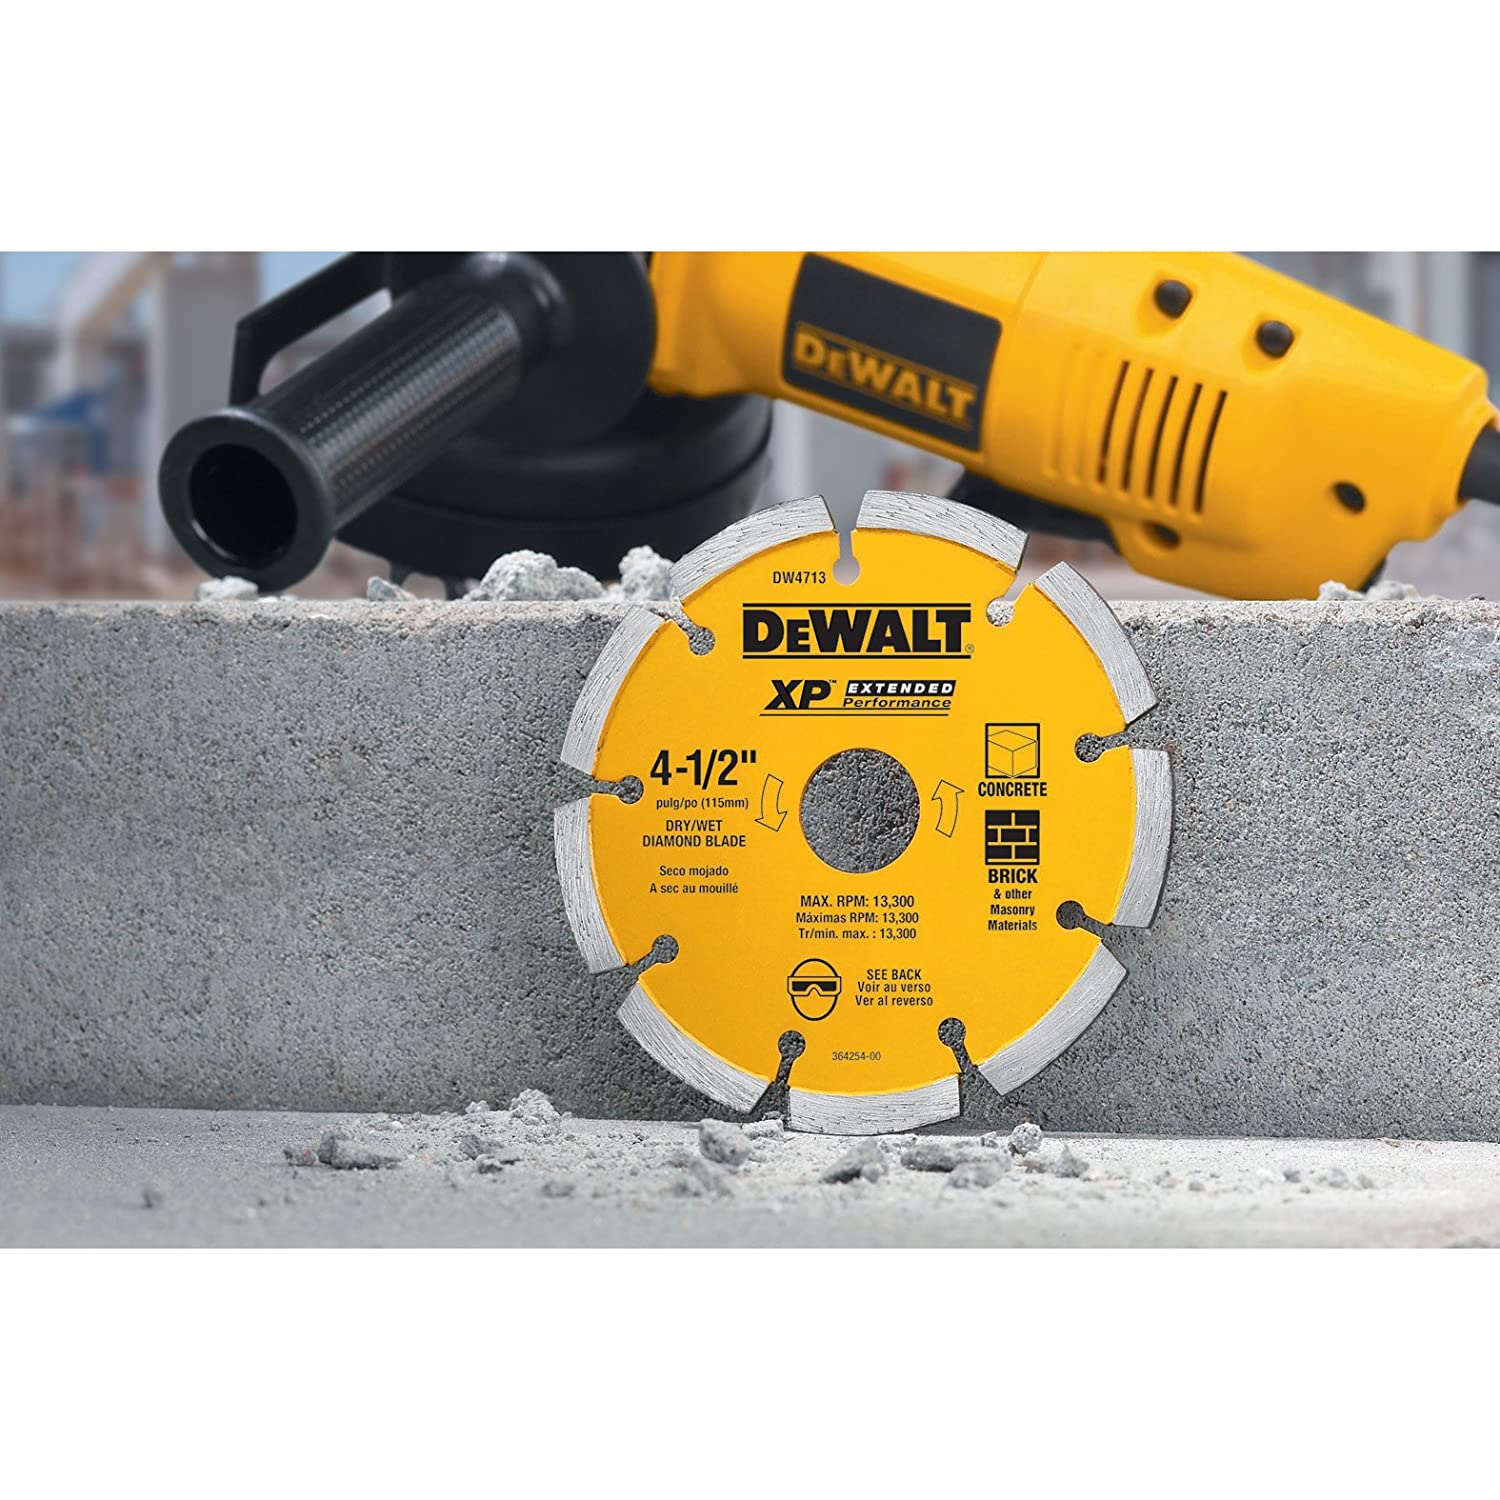 Dewalt dw4713 industrial 4 12 inch dry cutting segmented diamond dewalt dw4713 industrial 4 12 inch dry cutting segmented diamond saw blade with 58 inch or 78 inch arbor amazon dailygadgetfo Image collections